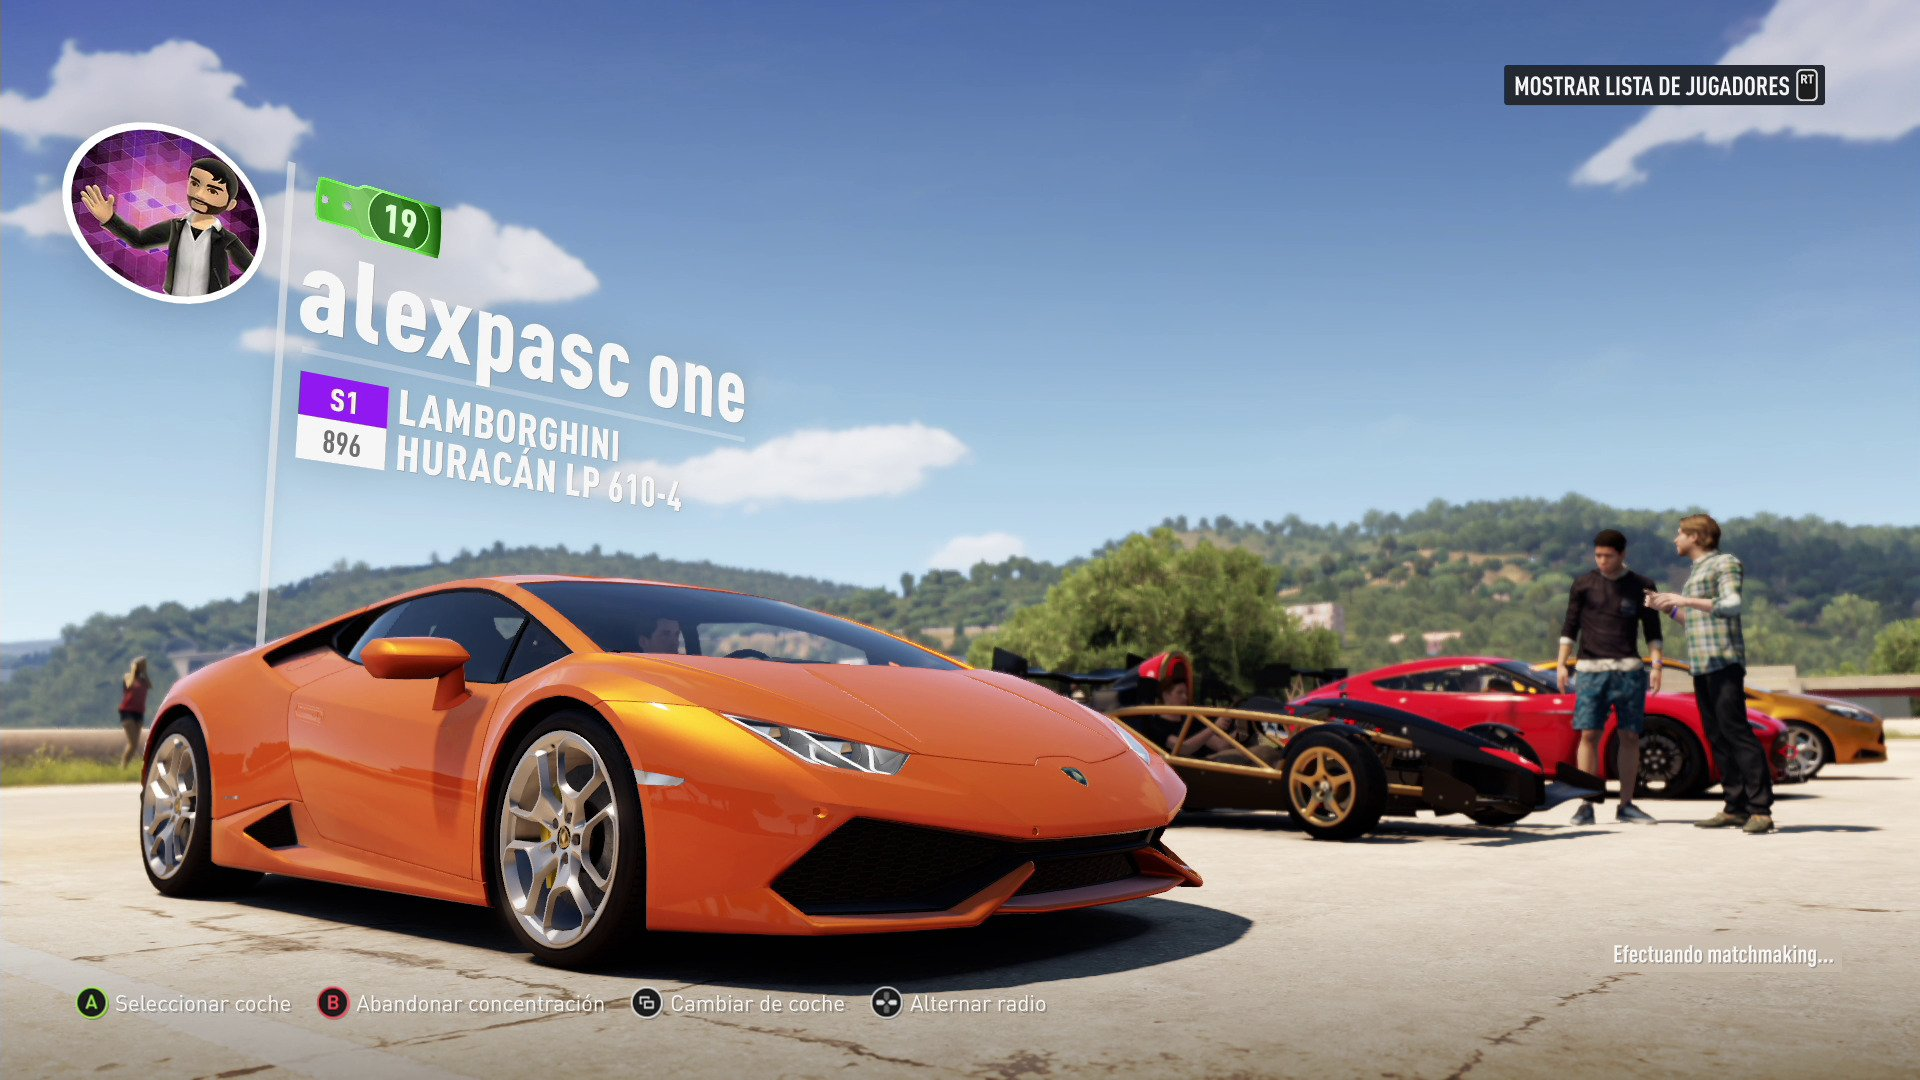 forza horizon 2 xbox one 3djuegos. Black Bedroom Furniture Sets. Home Design Ideas